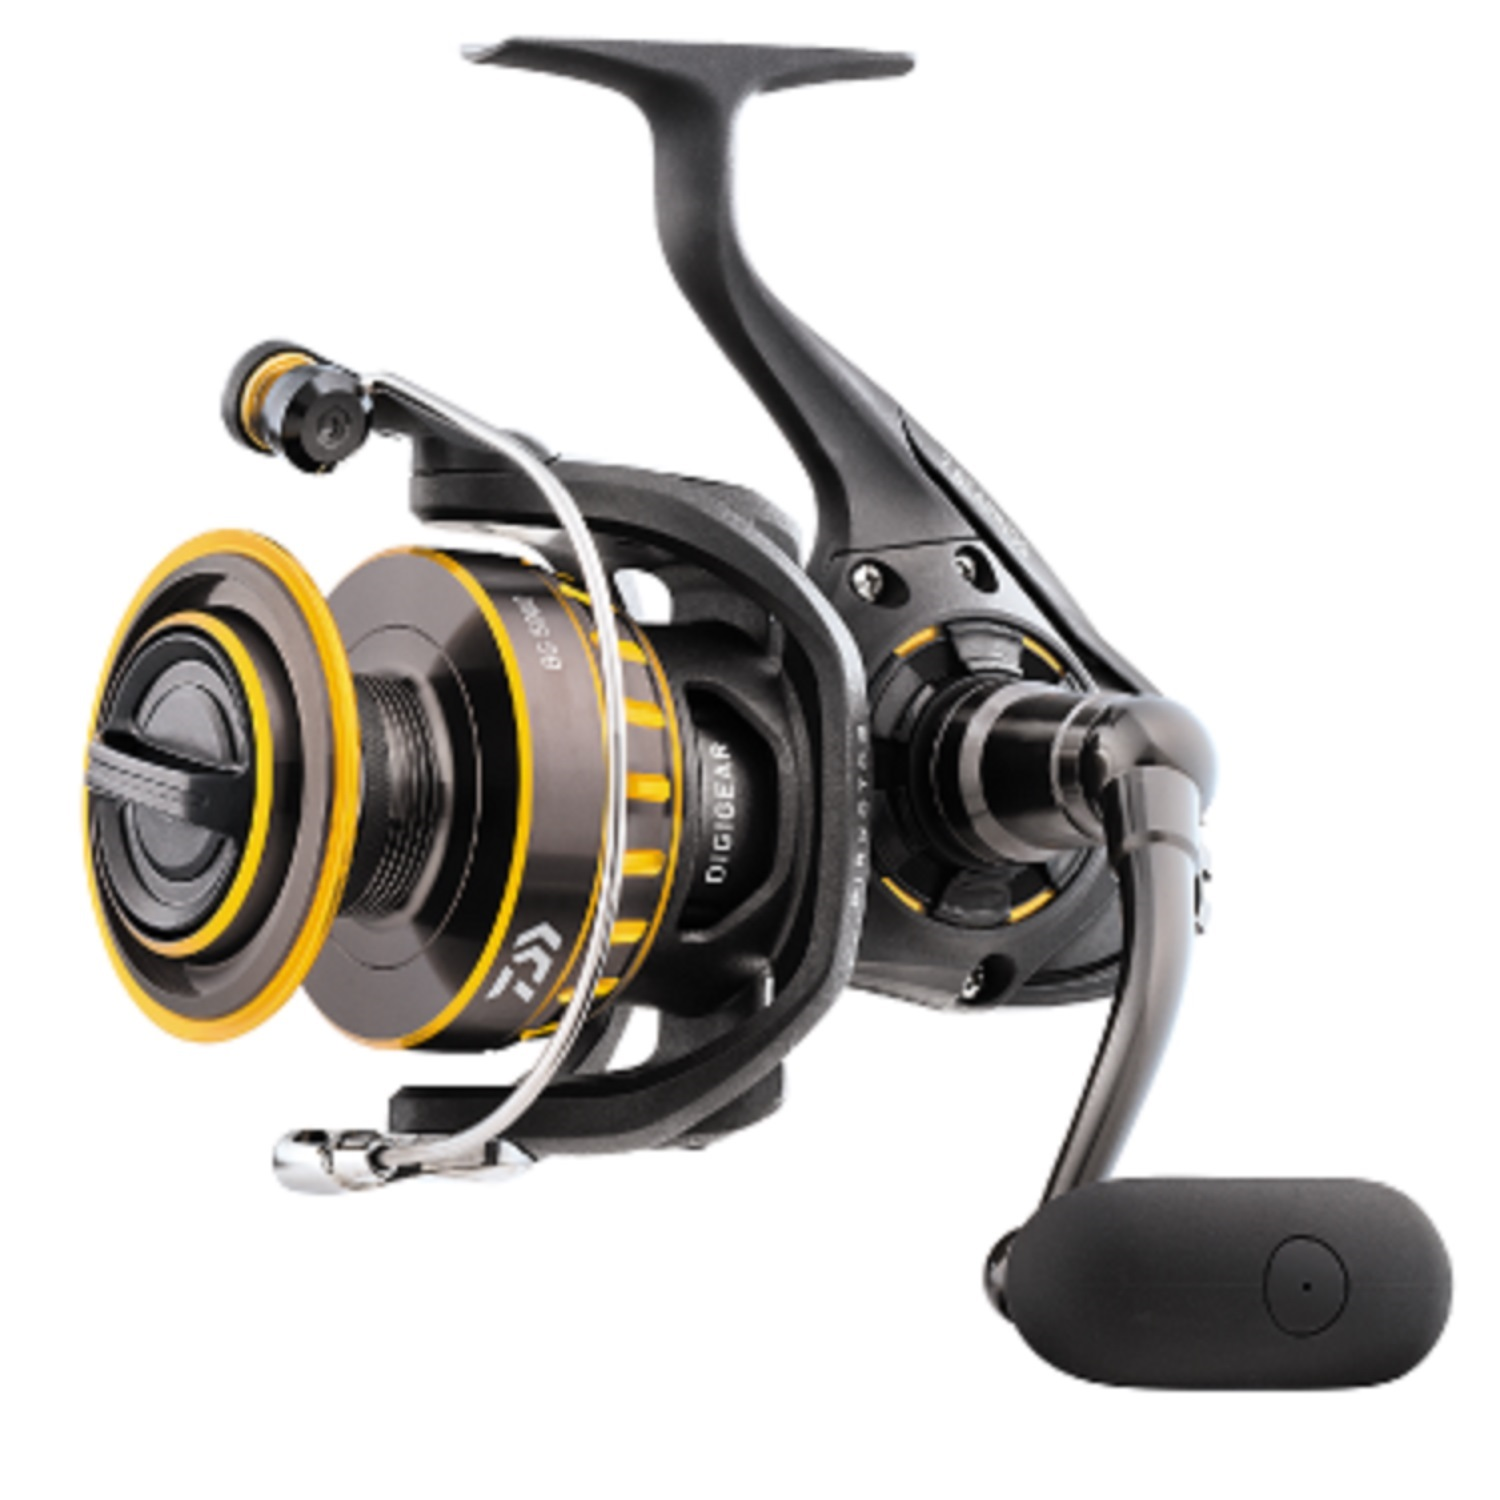 "Daiwa BG Saltwater Spinning Reel 3500, 5.7:1 Gear Ratio, 6+1 Bearings, 38.50"" Retrieve Rate, 17.60 lb Max Drag"